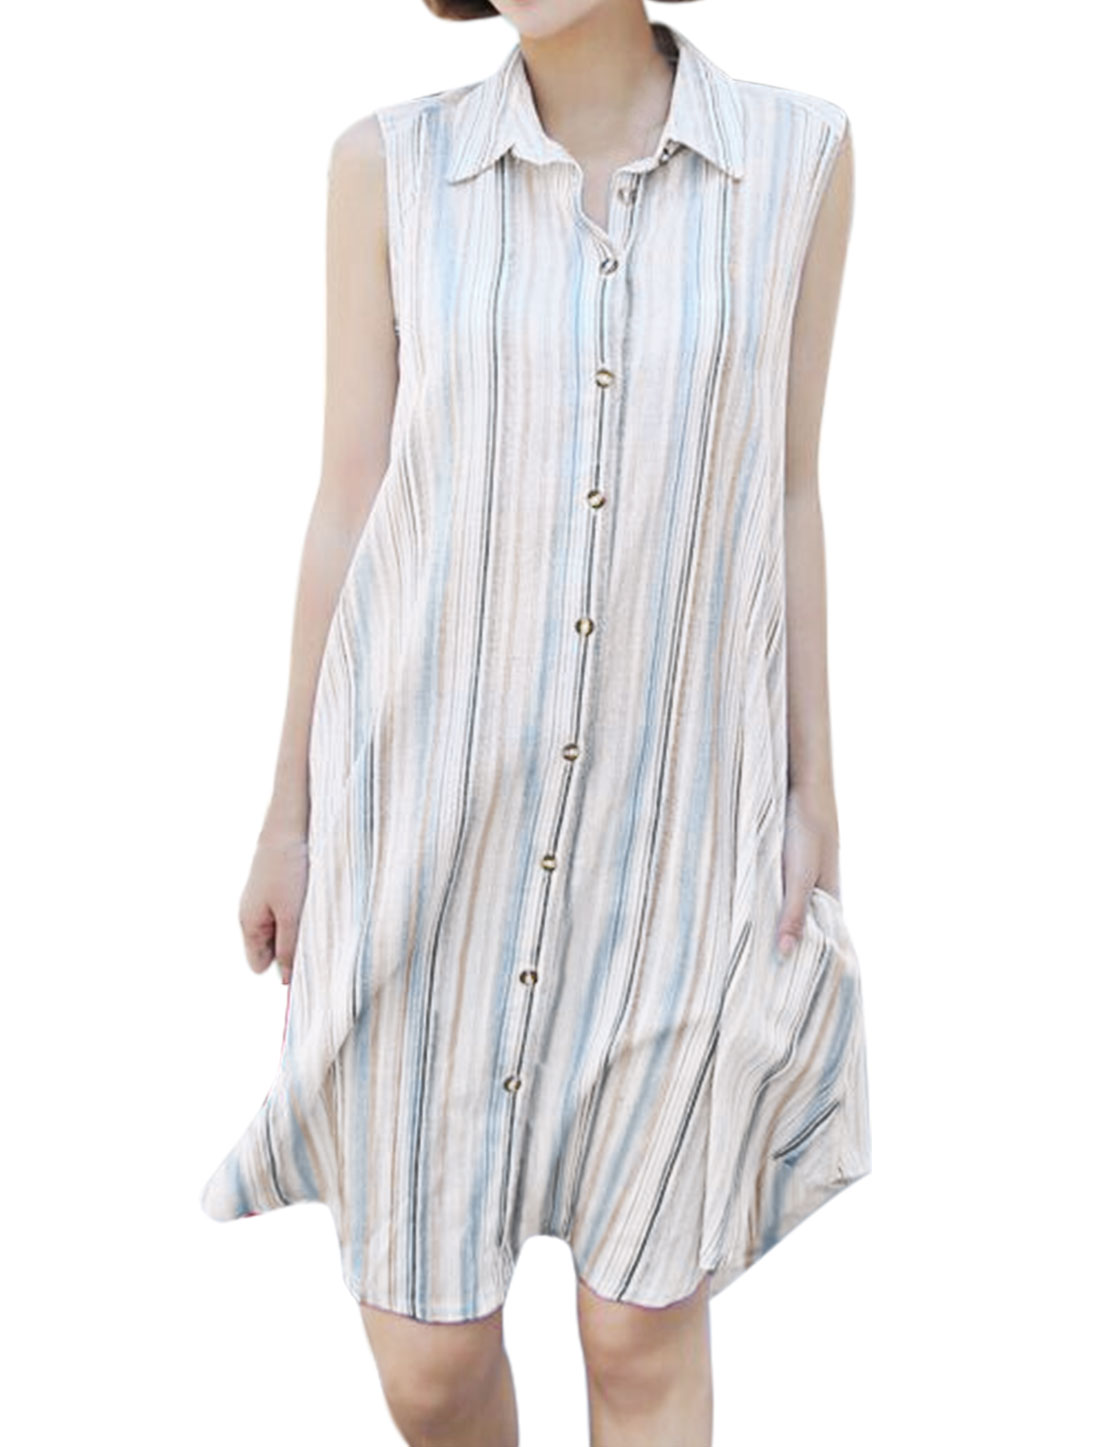 Women Sleeveless Single Breasted Striped Shirt Dress Gray S